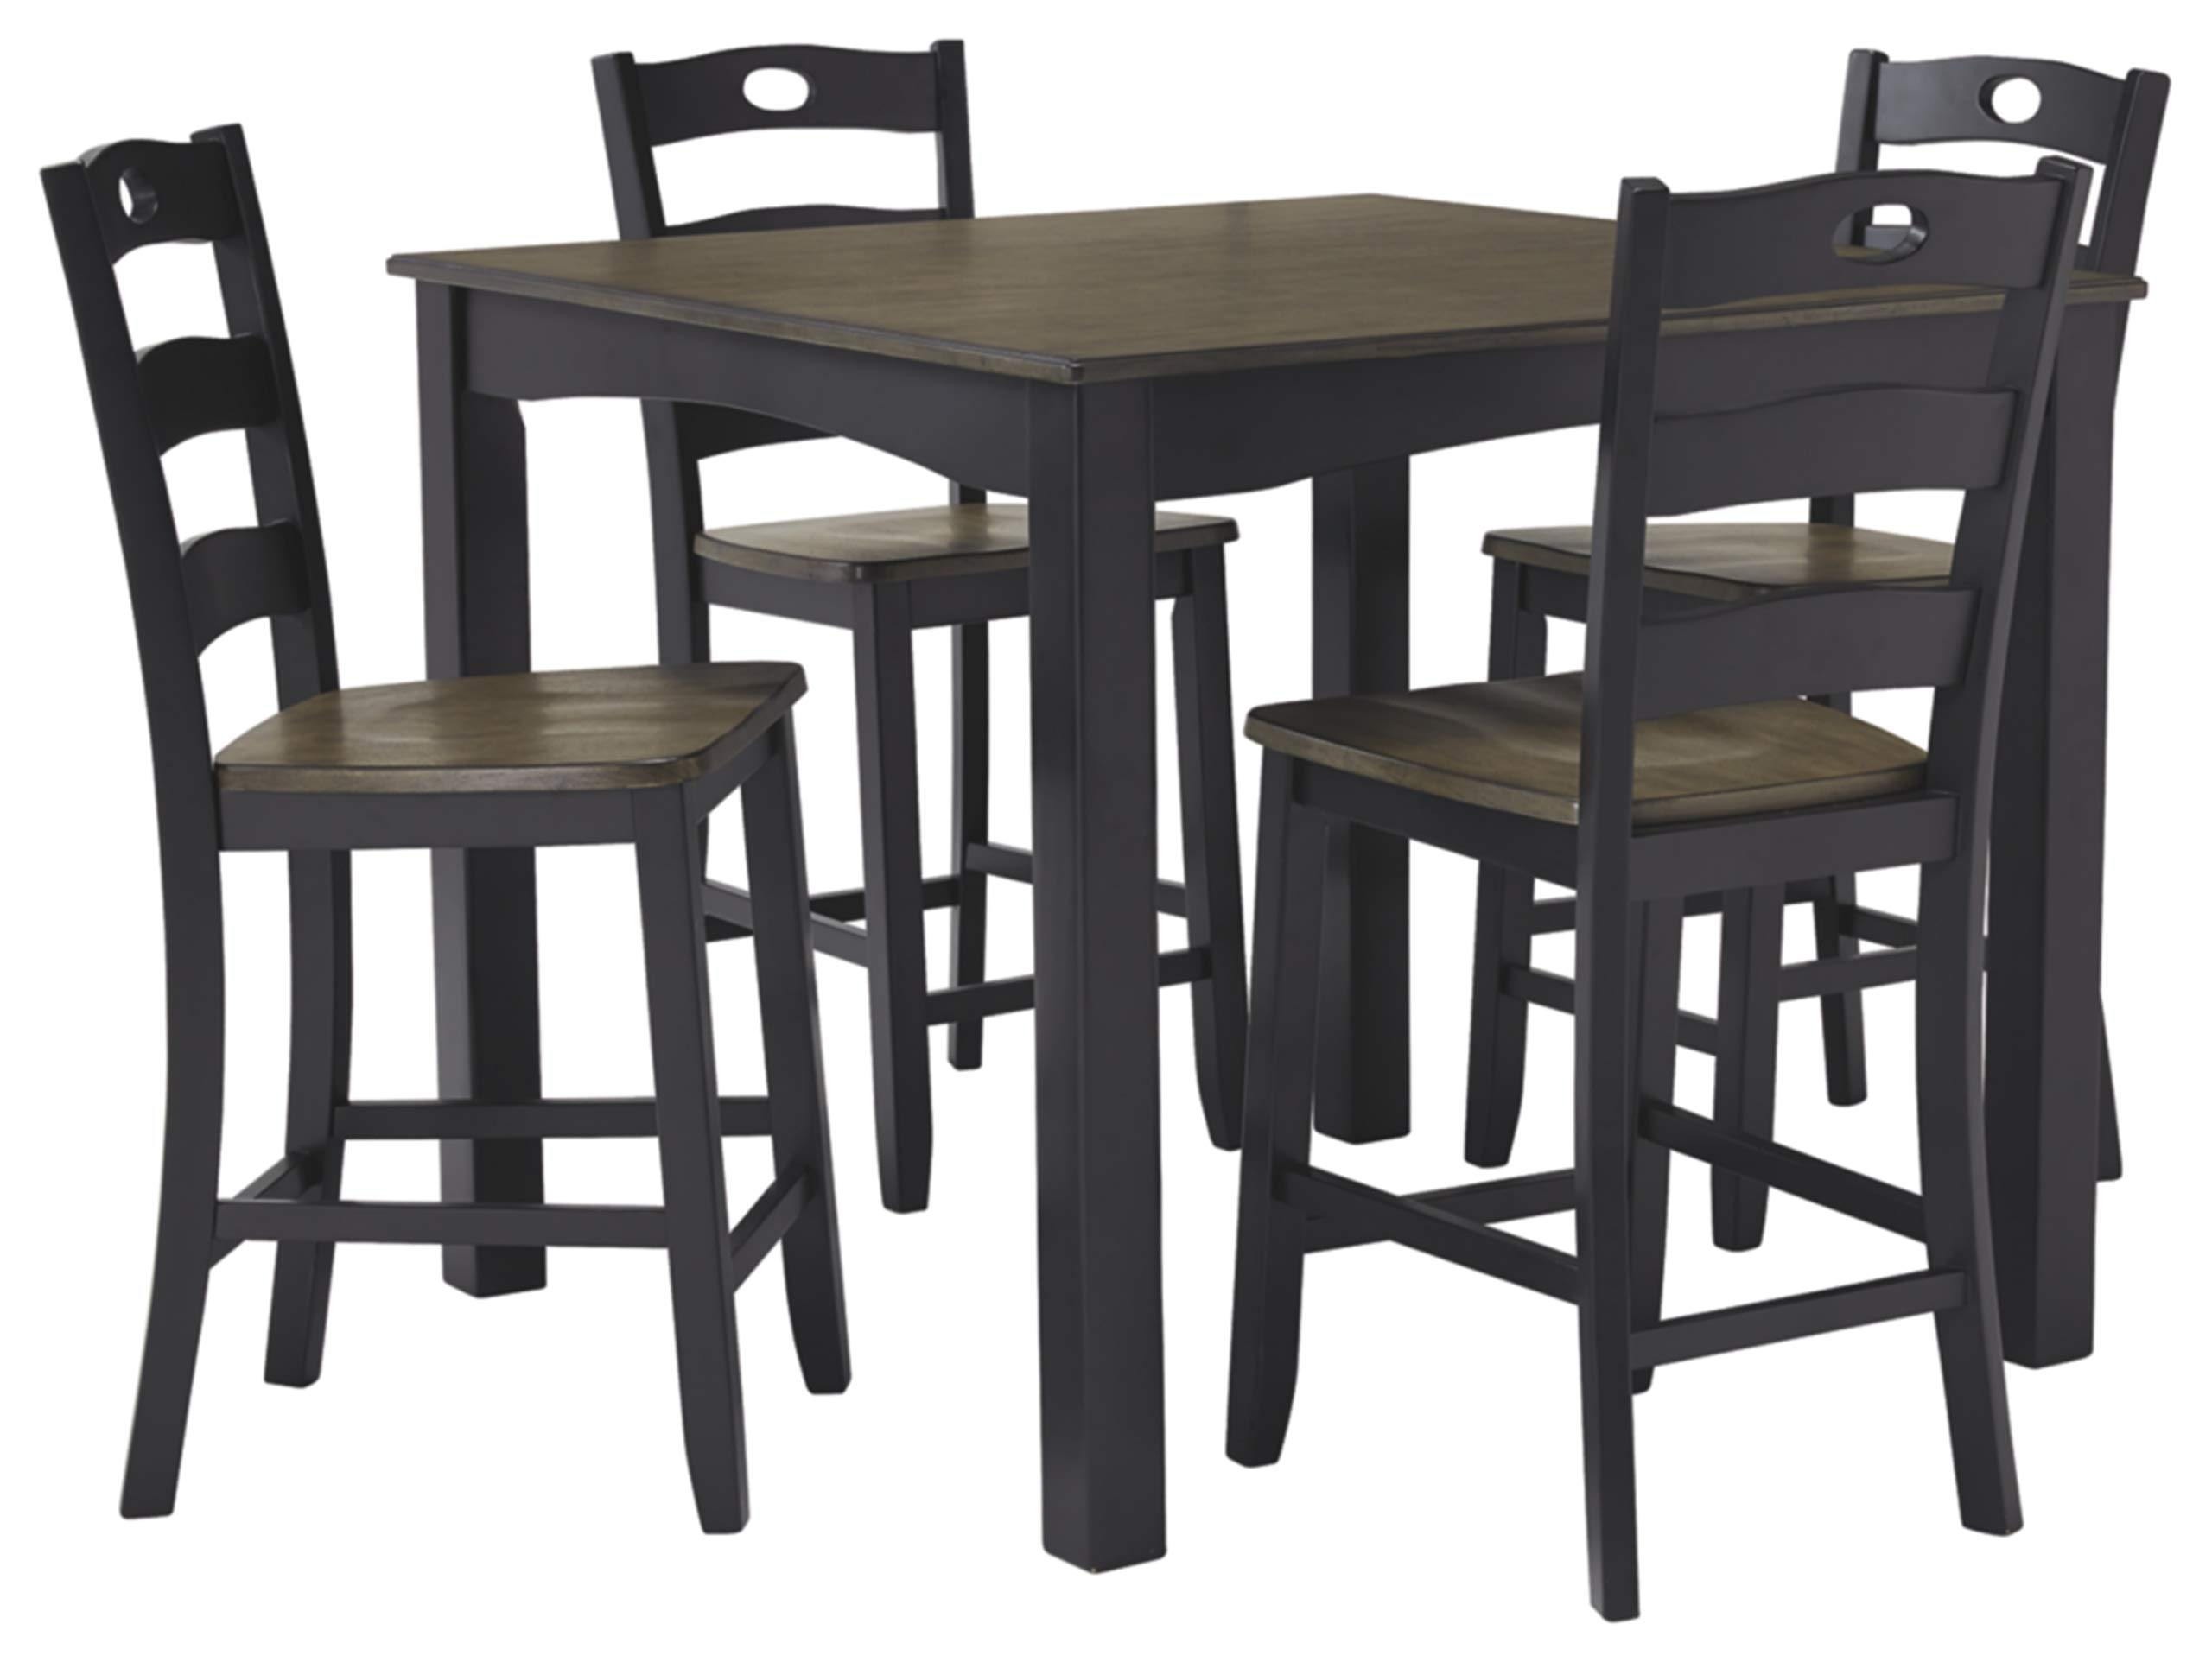 Signature Design by Ashley D338-223 Froshburg Counter Height Dining Room Table and Bar Stools (Set of 5), Grayish Brown/Black